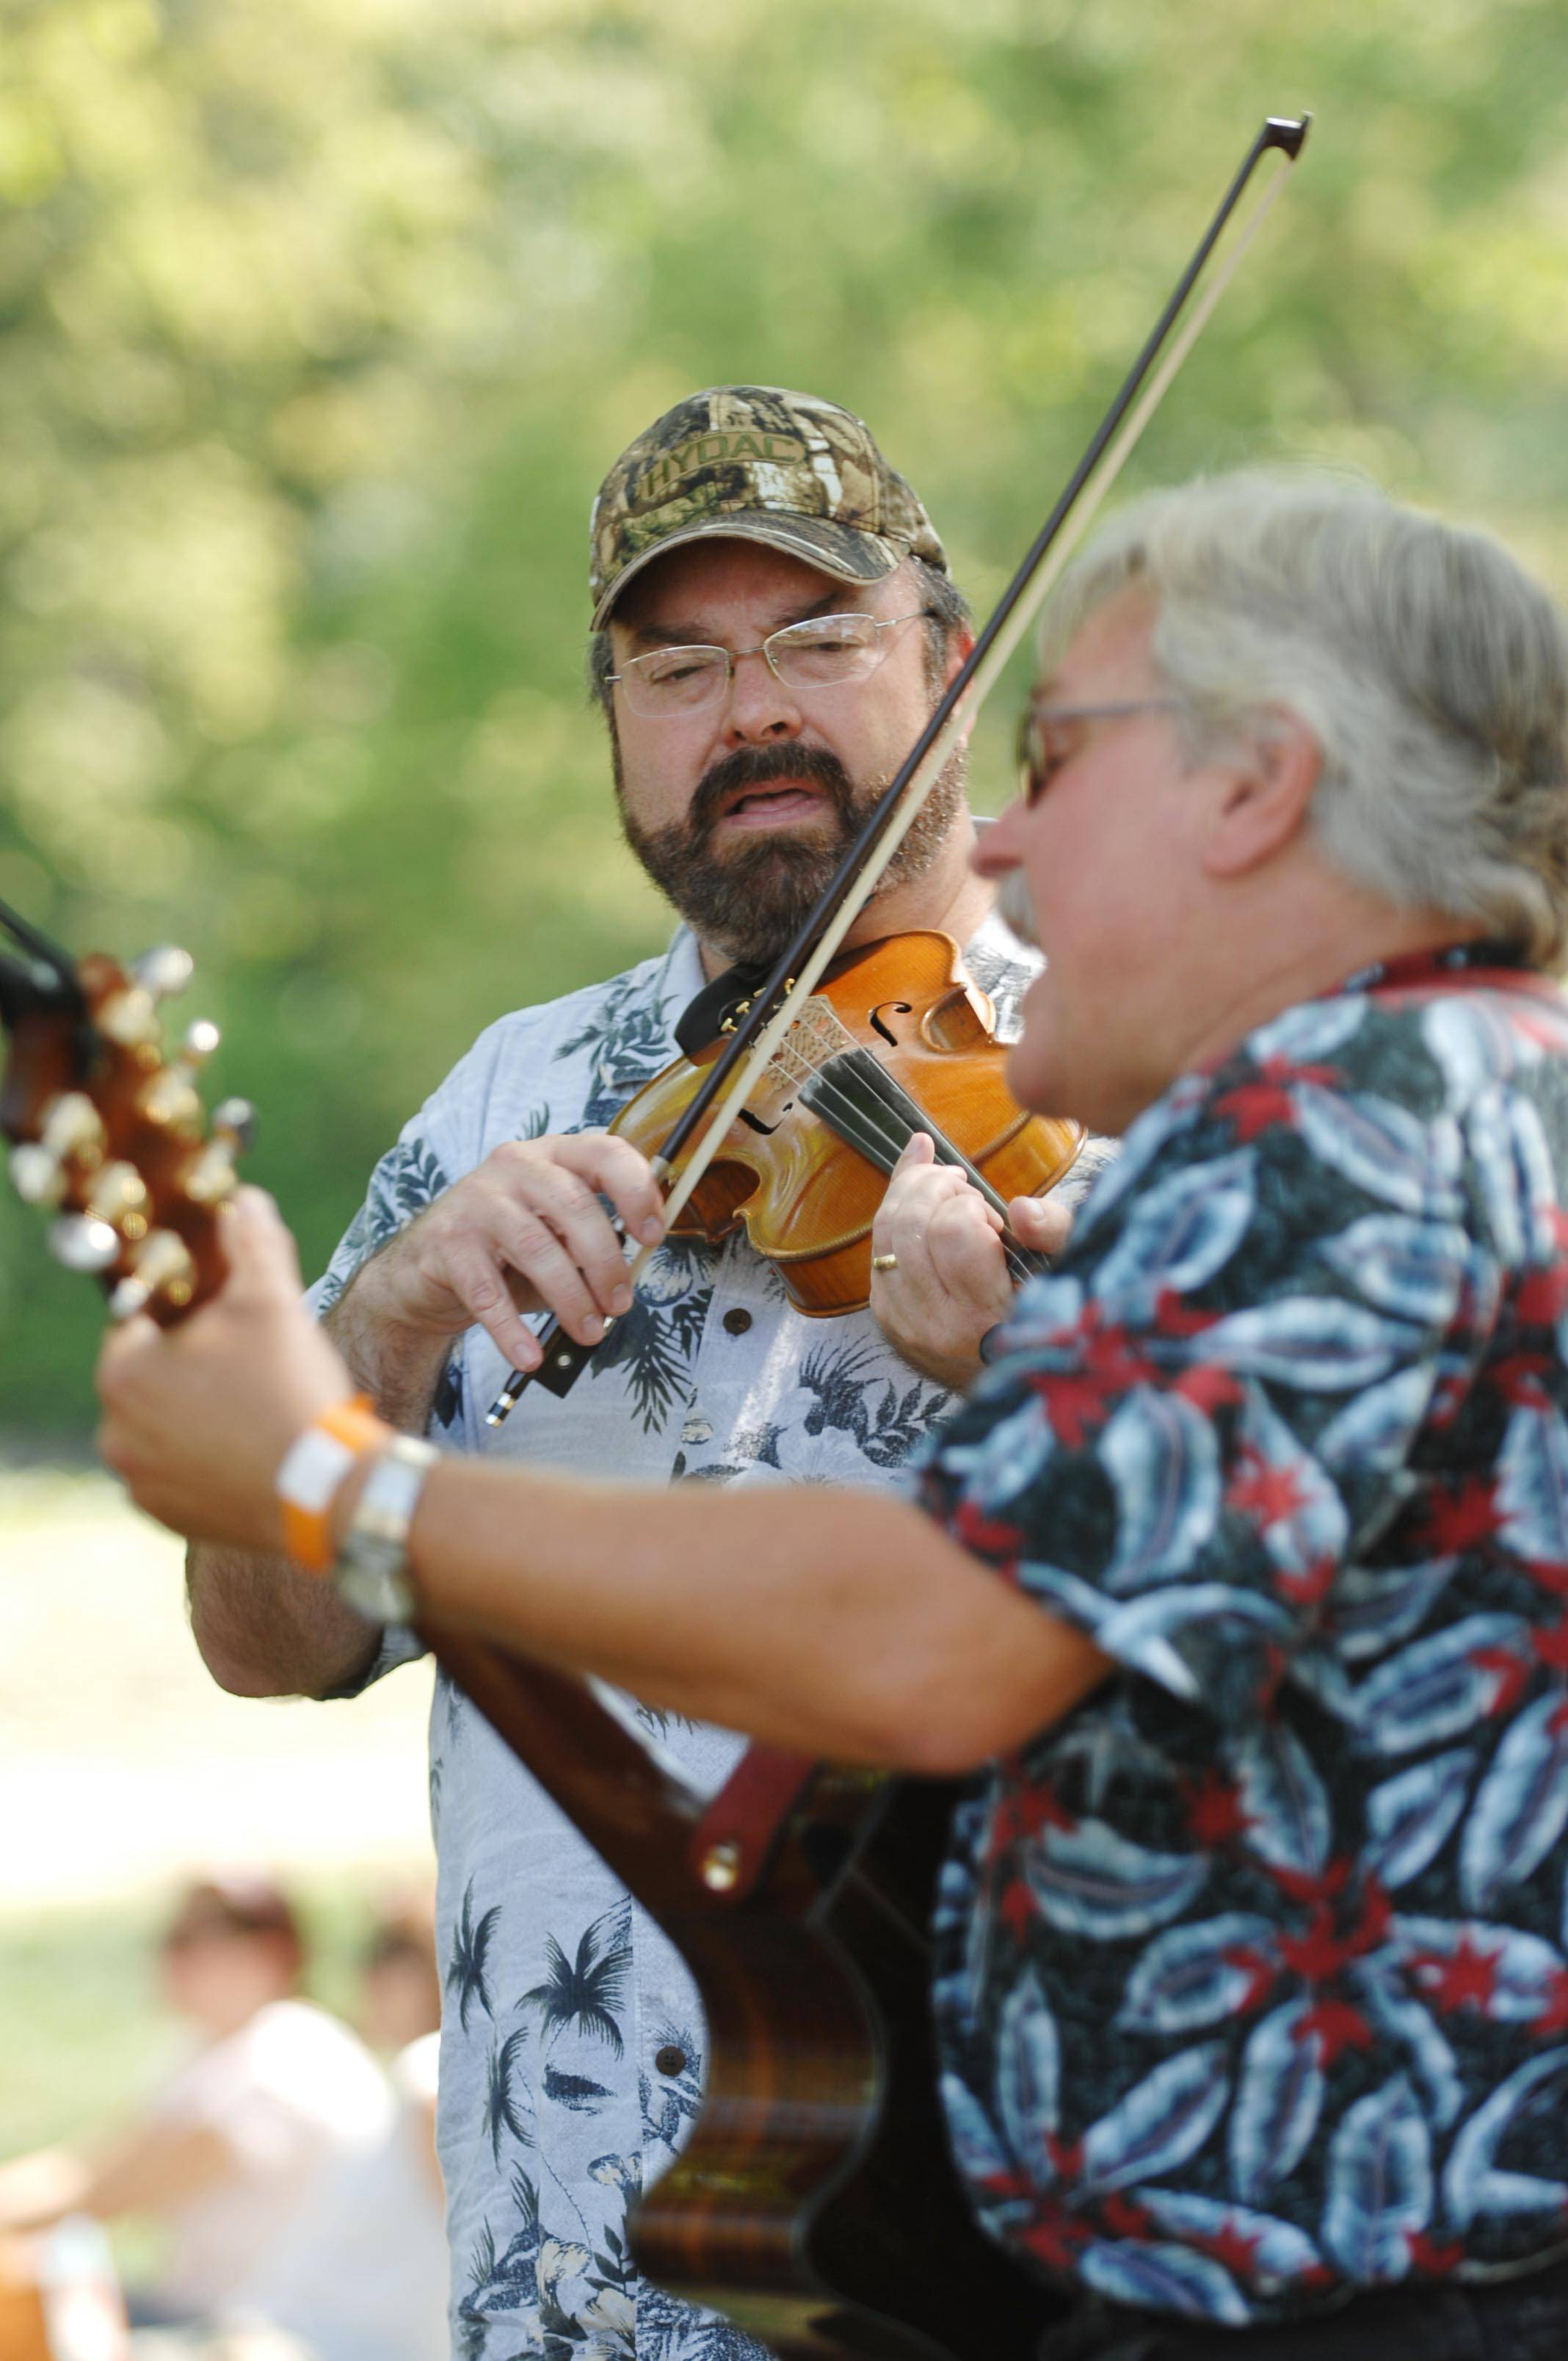 Ray Henaughan plays the fiddle and Dave Simpson of St. Charles plays guitar in an impromptu jam by the Fox River at the 36th Annual Fox Valley Folk Music and Storytelling Festival.